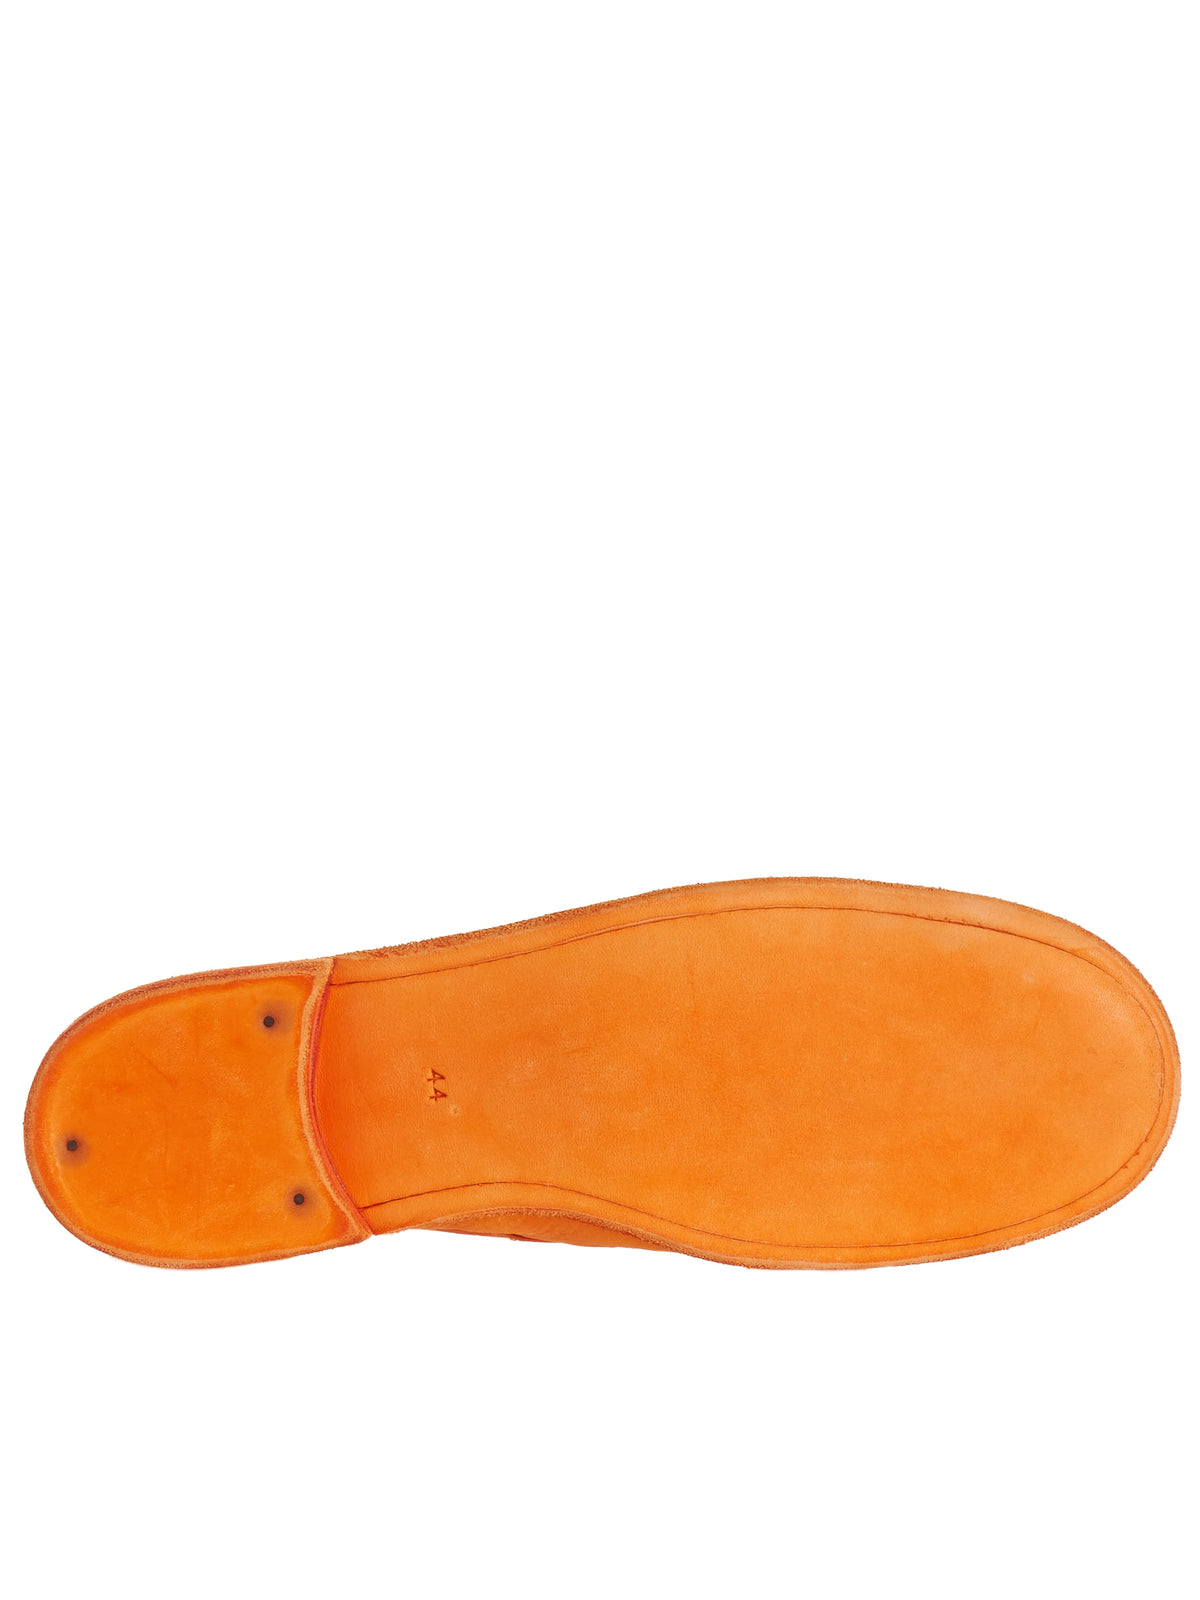 992 Donkey Leather Derby (992-DONKEY-FG-NEON-ORANGE)